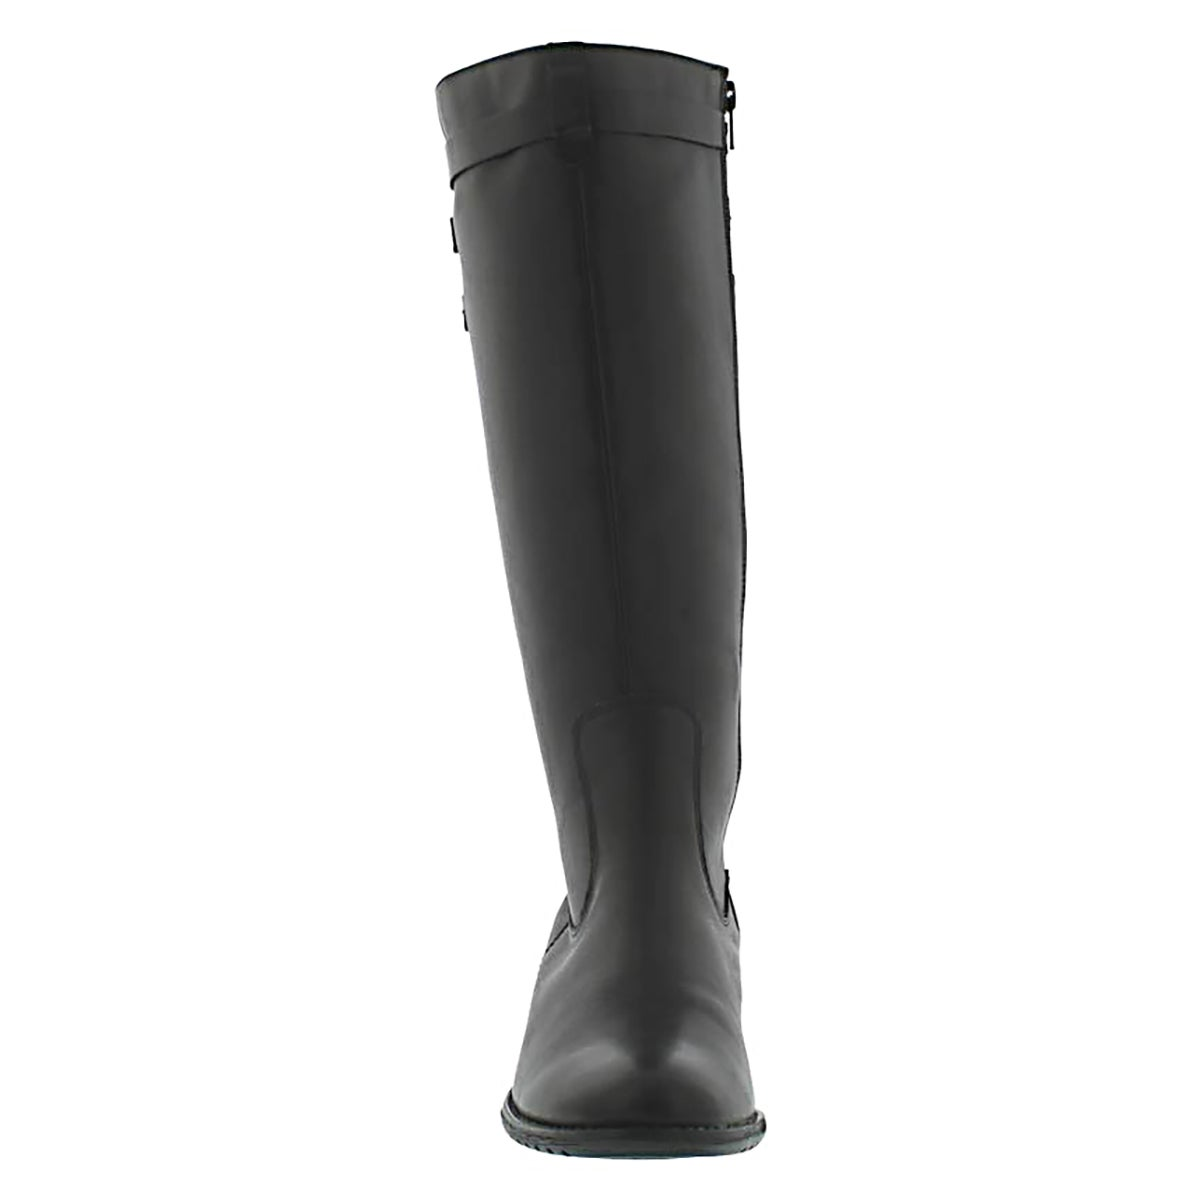 Lds Leslie blk tall WP leather boot